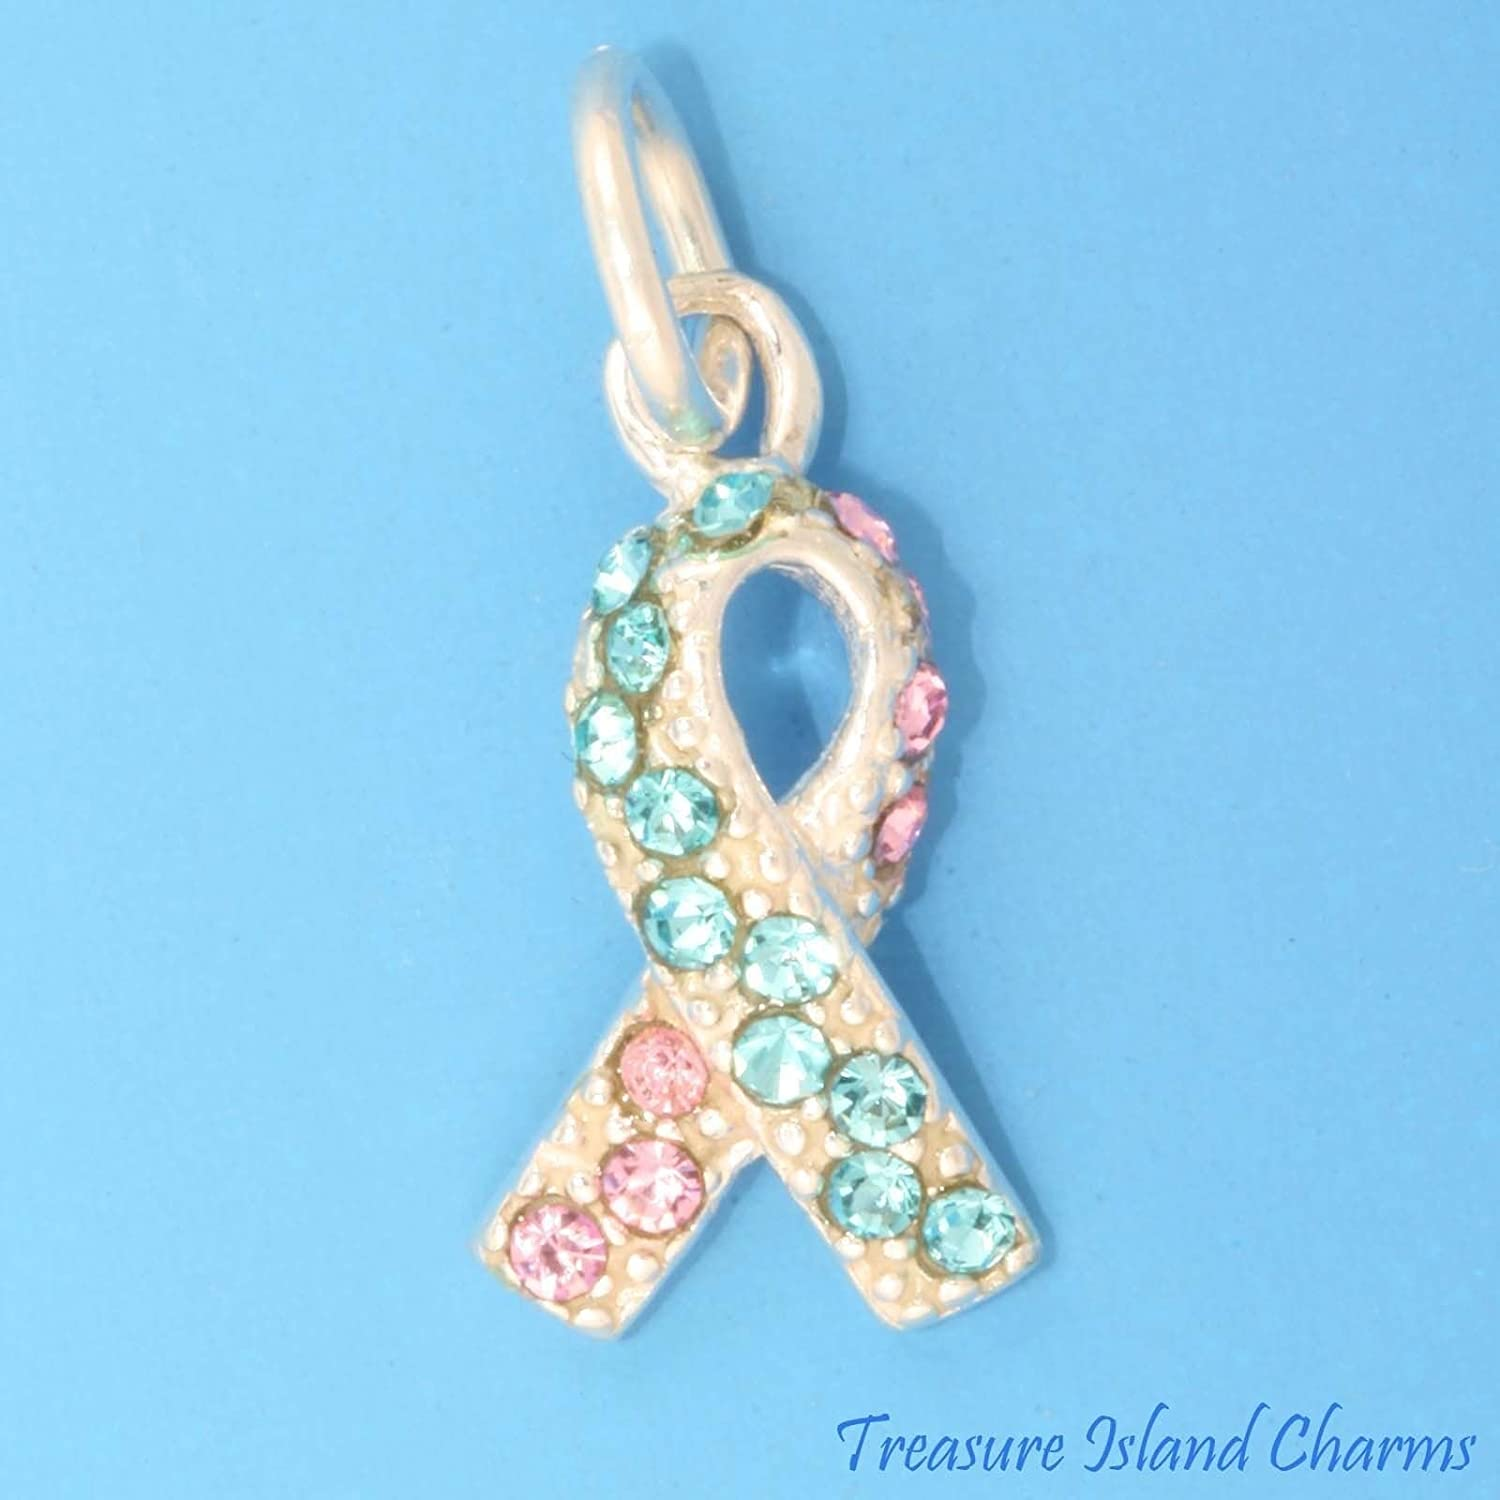 planes postre junio  Amazon.com: Infant Baby Loss Ribbon .925 Sterling Silver Charm Blue Pink  Swarovski Crystals Jewelry Making Supply Pendant Bracelet DIY Crafting by Wholesale  Charms